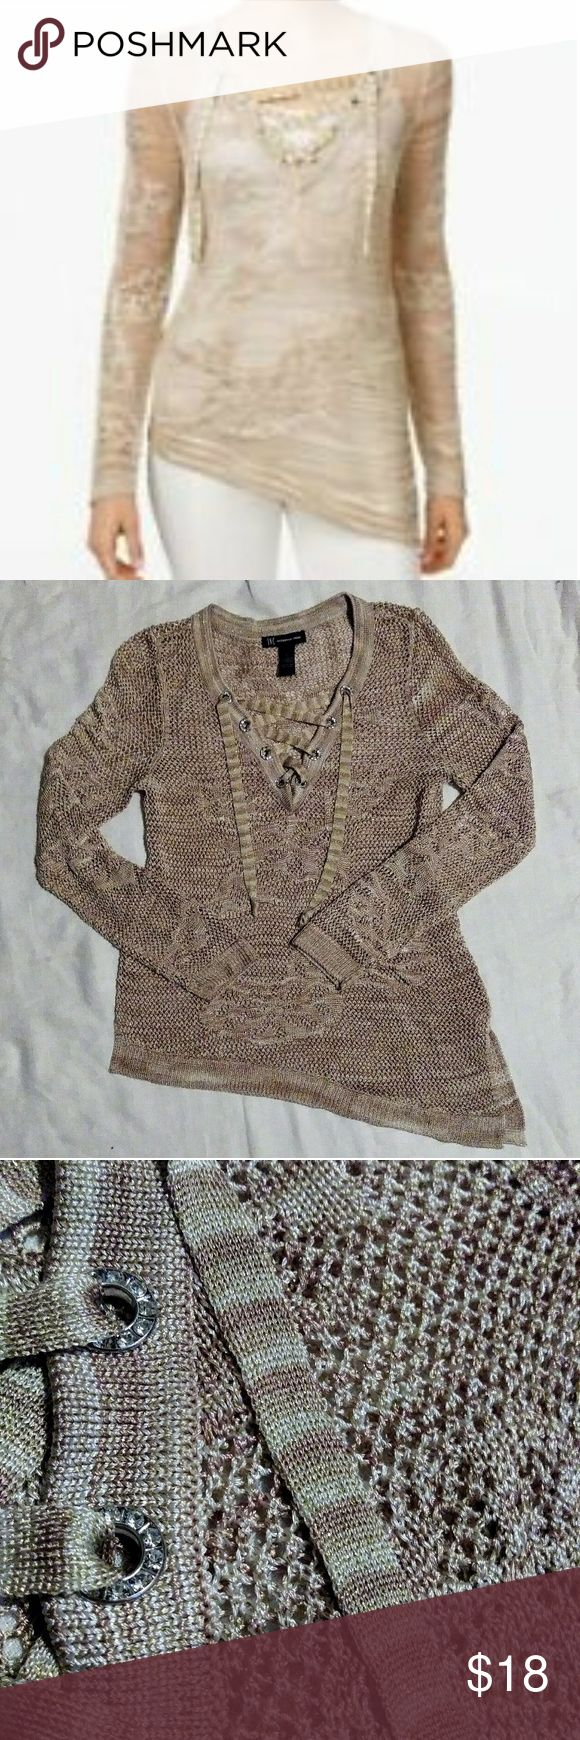 INC International Concepts Gold Metallic Sweater Sheer Gold and Cream Asymmetrical Sweater. Lace Up V-Neck Sheer Knit Sturdy Knit delicate without being so delicate you can't wear it well. Holds its shape.  Machine Wash EUC - from Macy's INC International Concepts Sweaters V-Necks